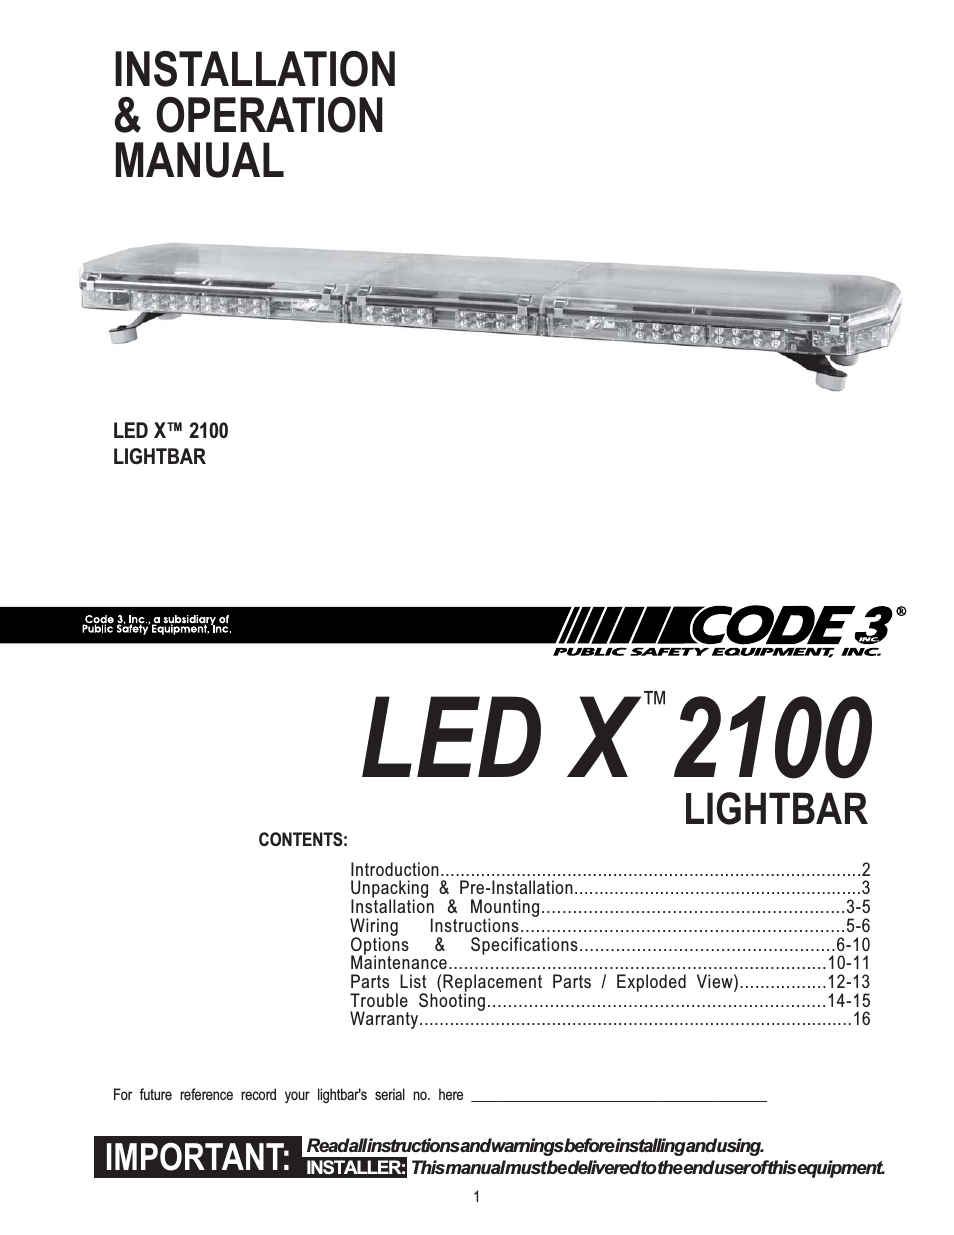 Code 3 Light Bar Wiring Diagram | Wiring Diagram - Light Bar Wiring Diagram